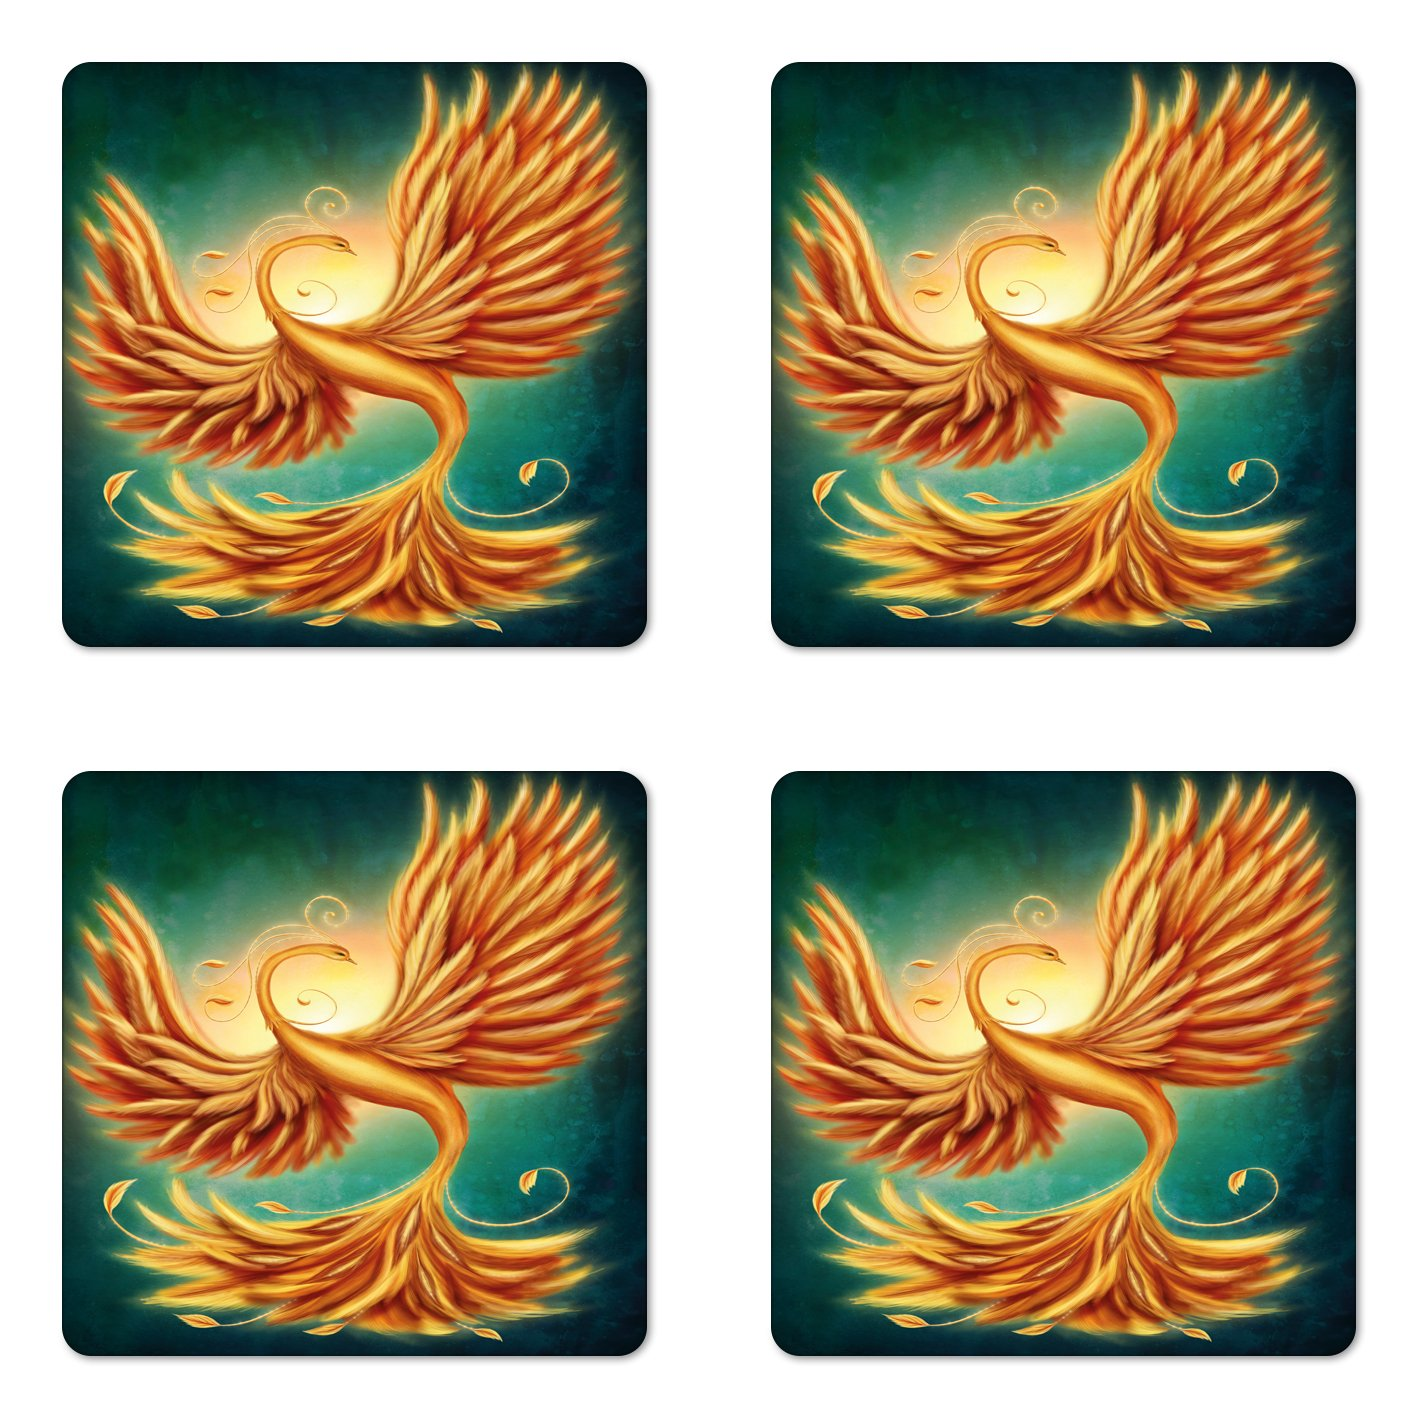 Square Hardboard Gloss Coasters for Drinks Marigold and Emerald Lunarable Modern Coaster Set of Four Phoenix Magical Charming Bird Feathers with Alluring Swirls Work of Art